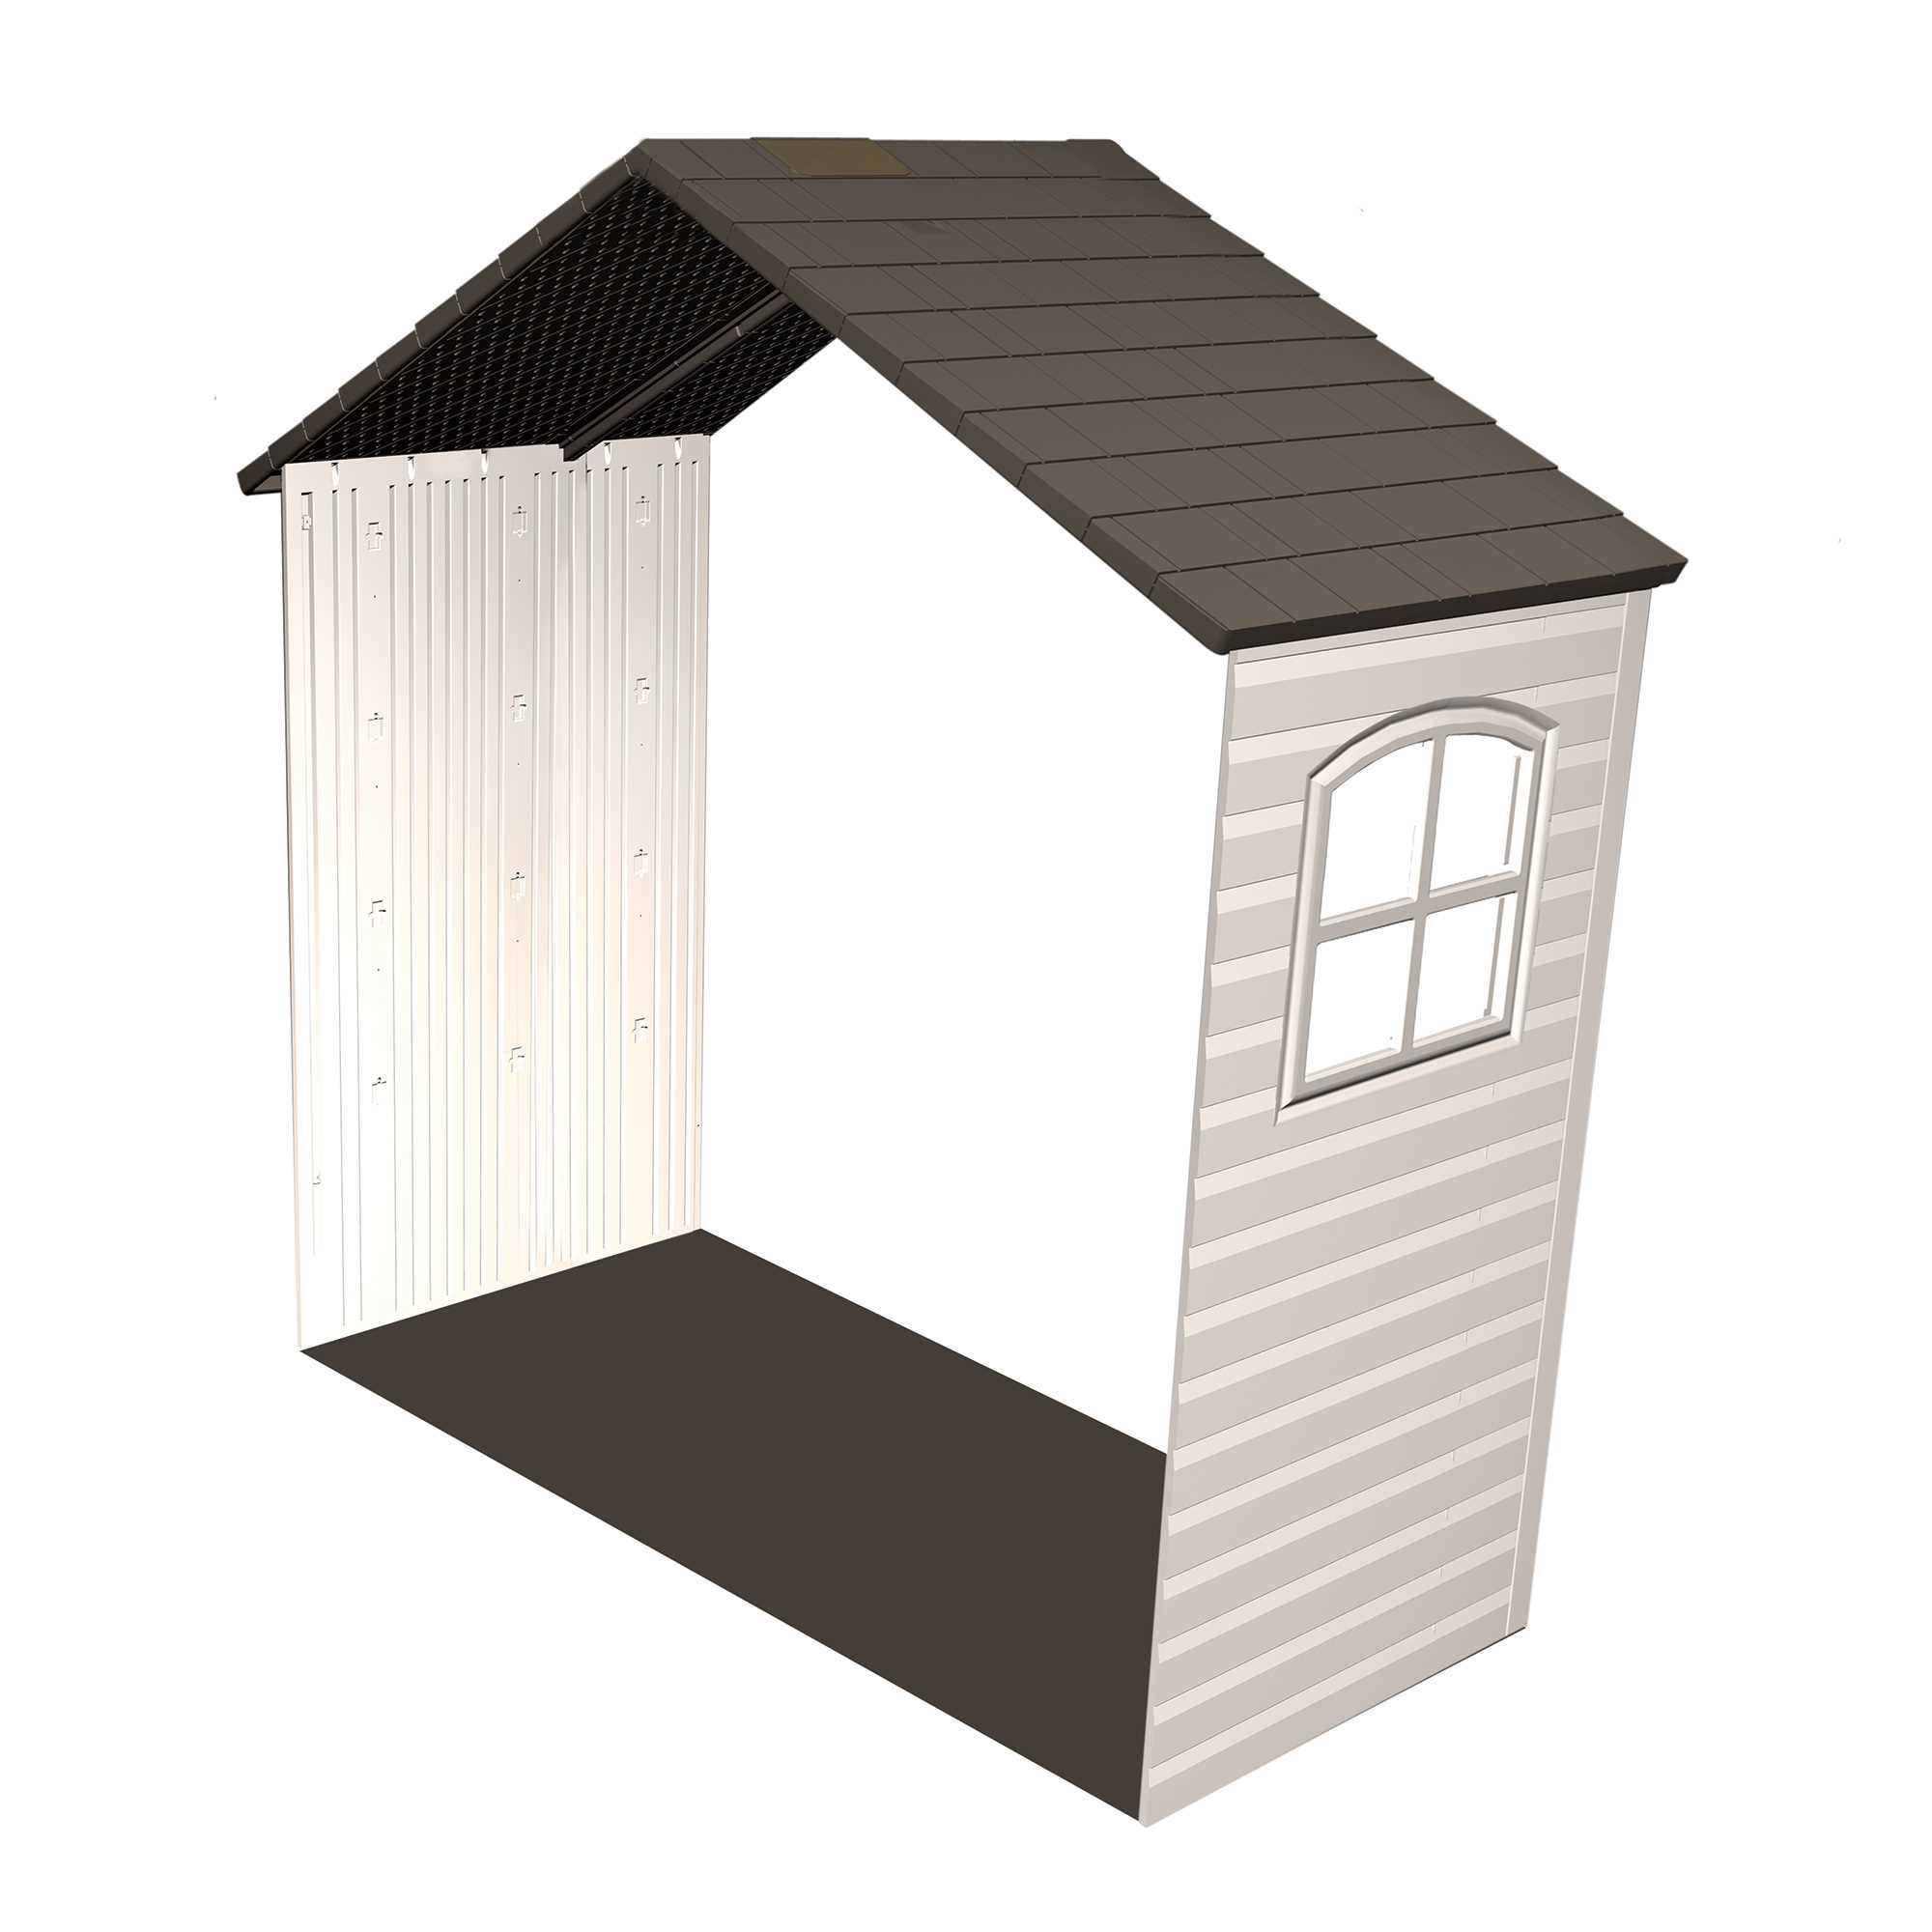 30 in. Shed Extension Kit for 8 ft. Sheds